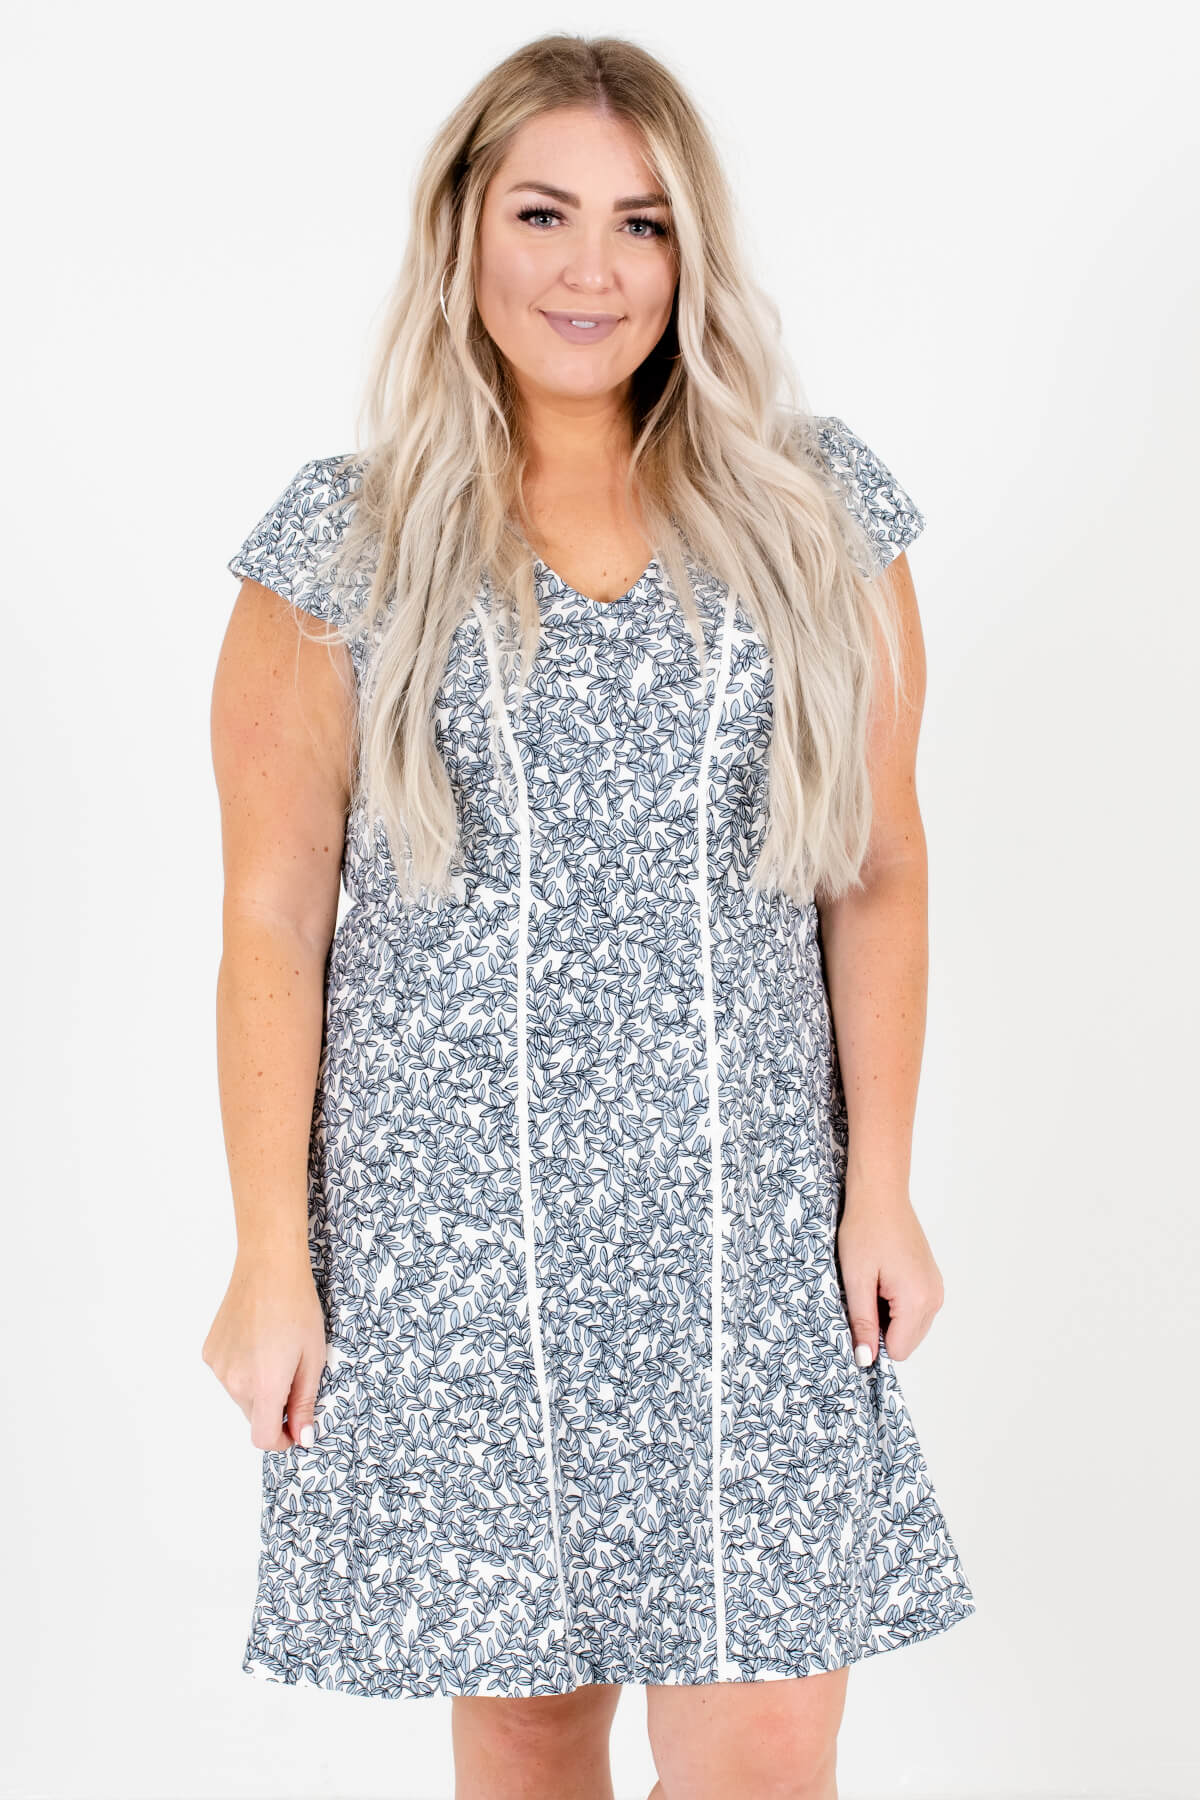 White and Blue Leaf Patterned Plus Size Boutique Mini Dresses for Women